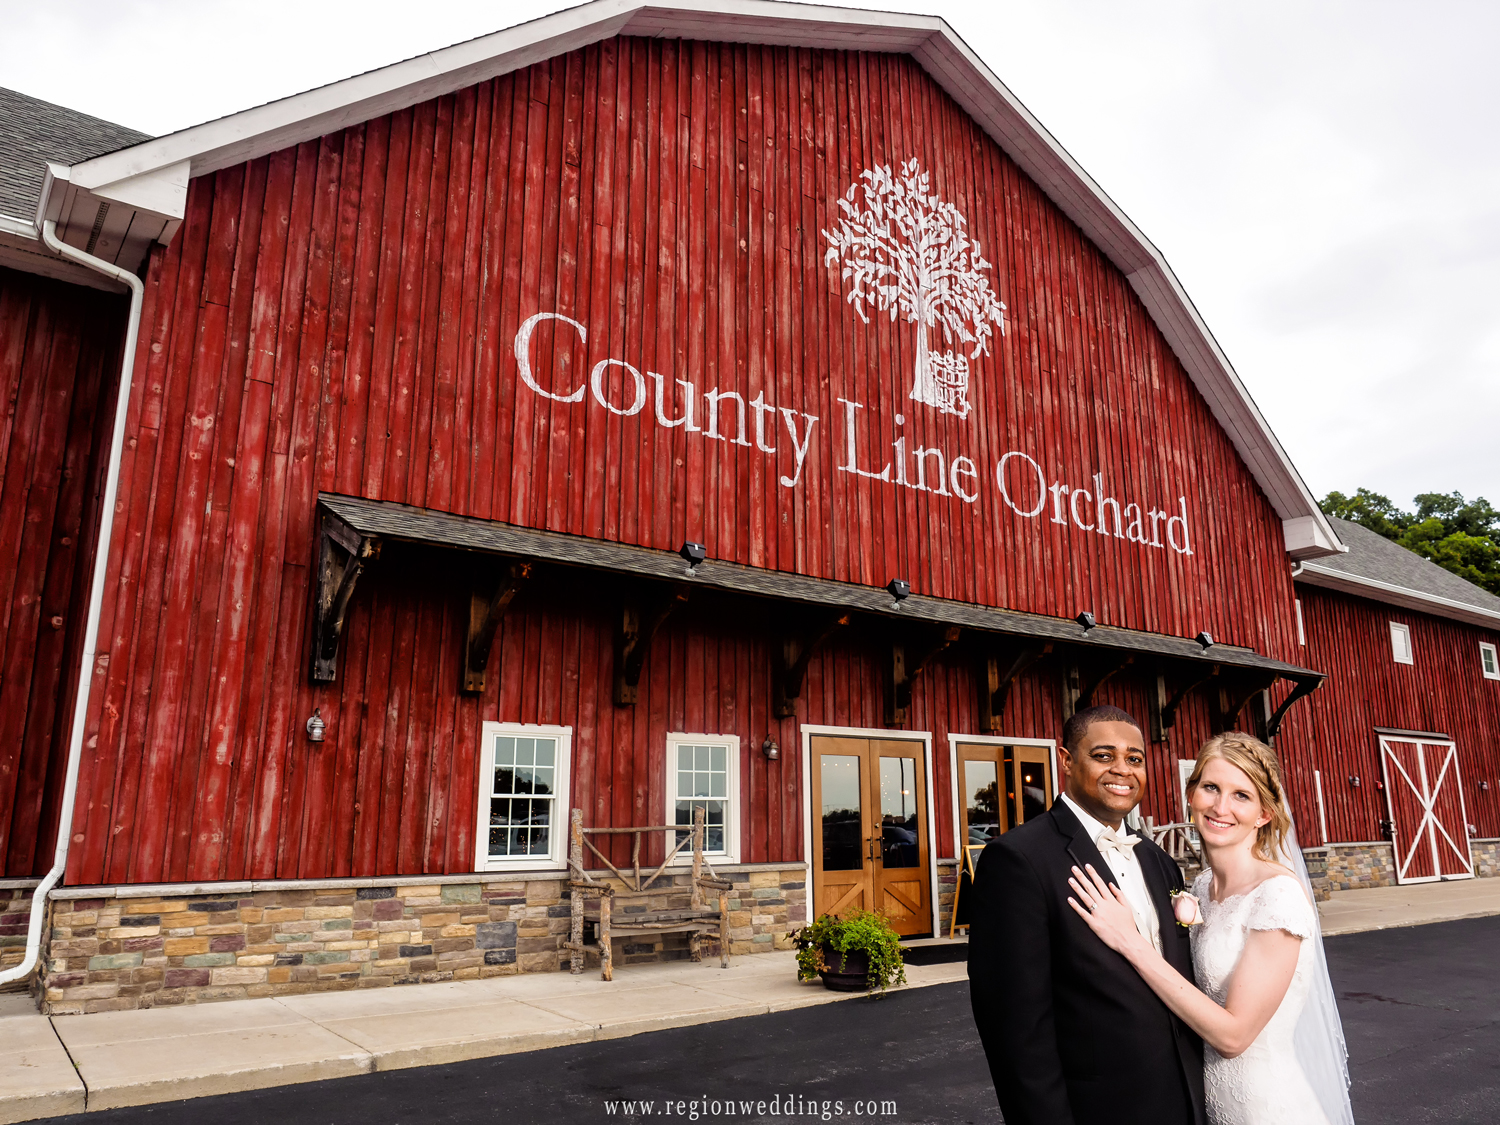 The bride and groom in front of the big red barn of County Line Orchard.